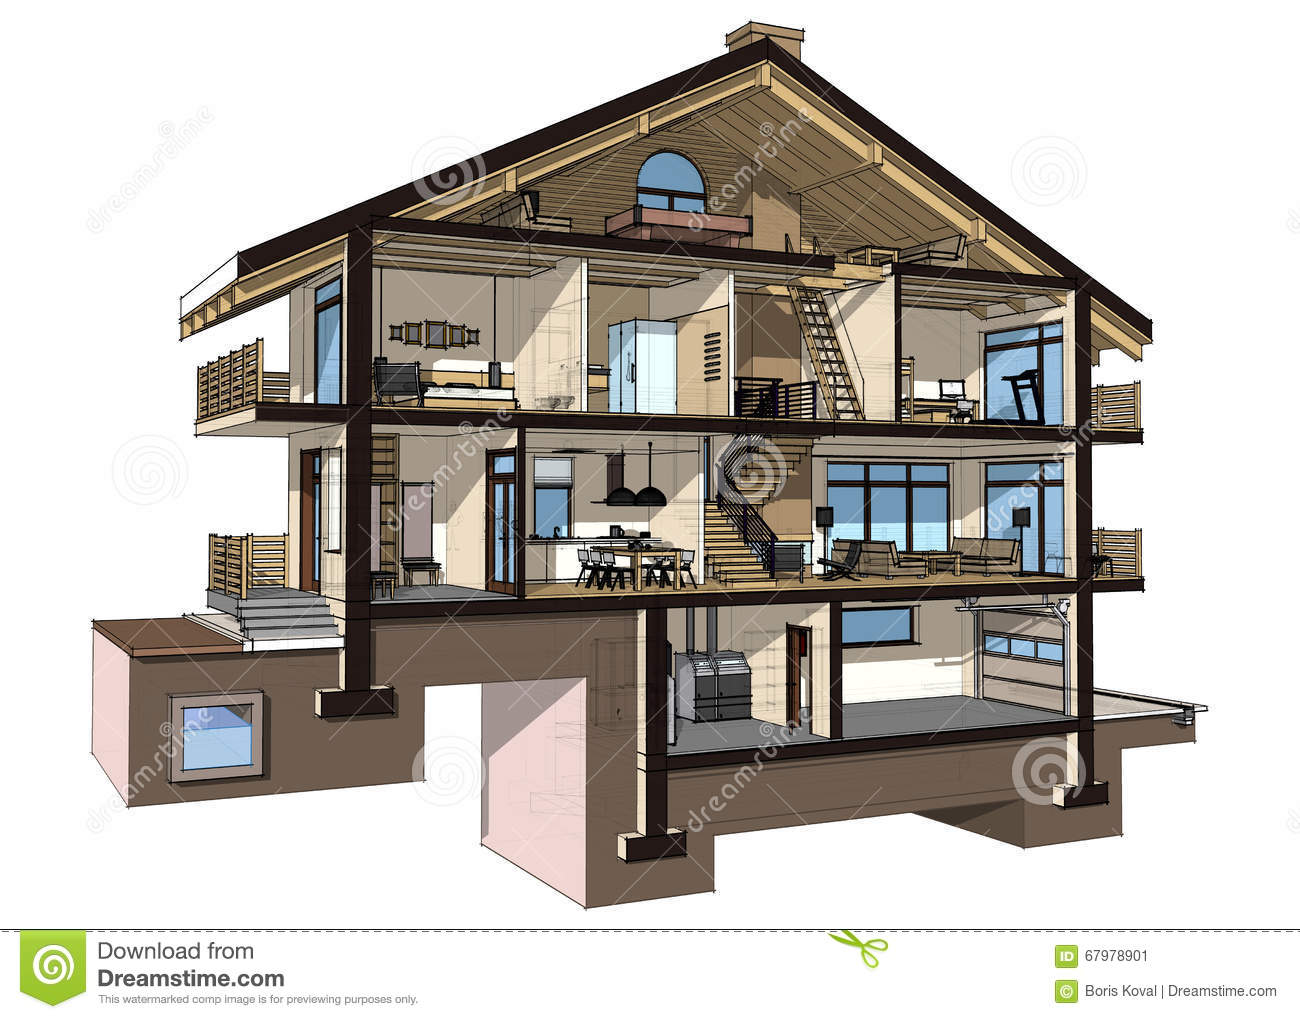 Engineering heating concept heating project of heating for Half basement house plans